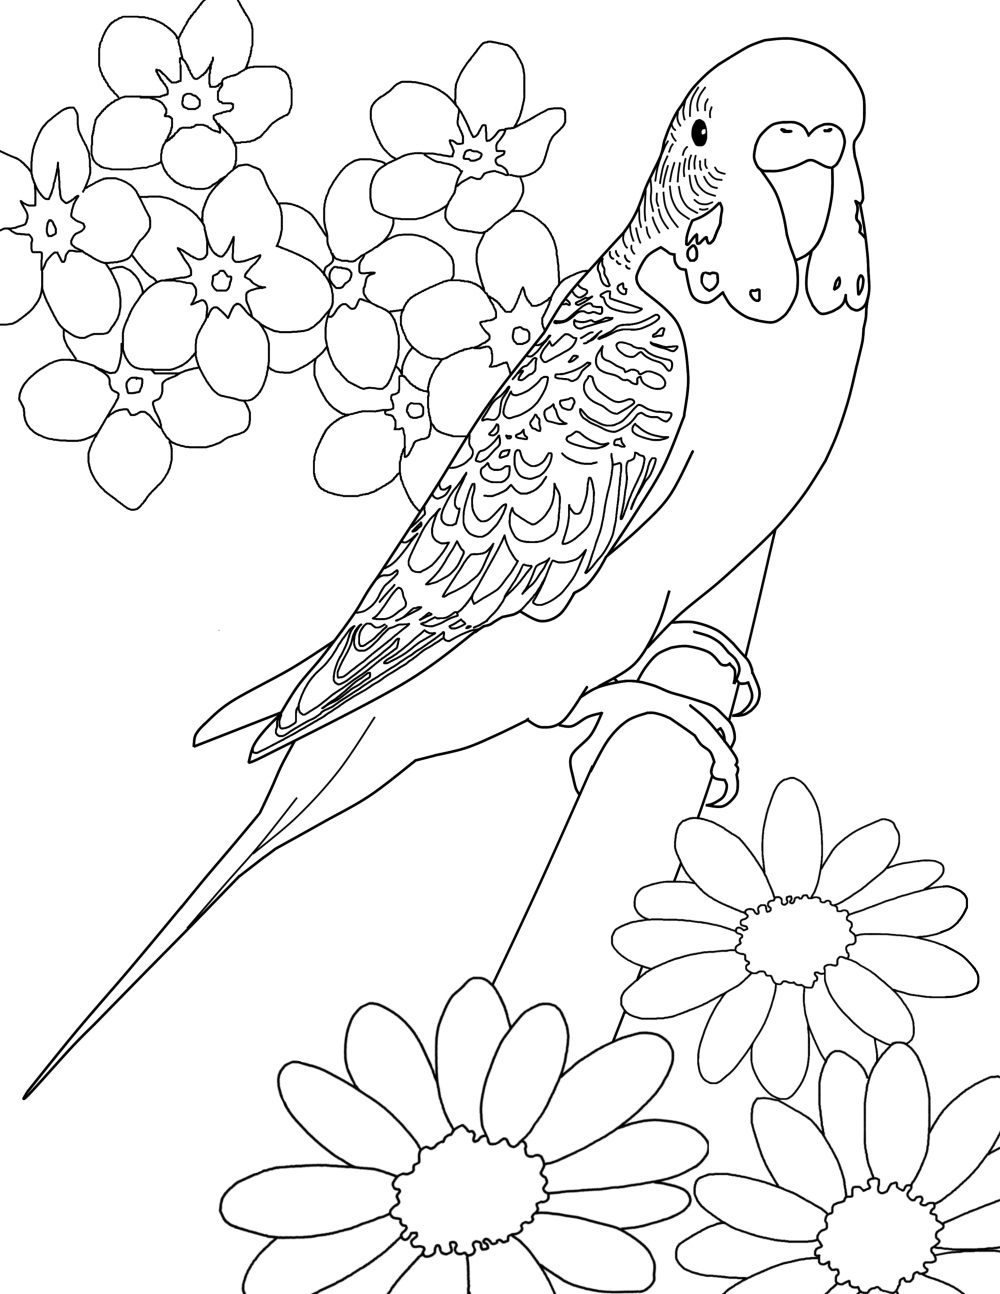 Drawn parakeet colouring page Colorcoop budgie color page